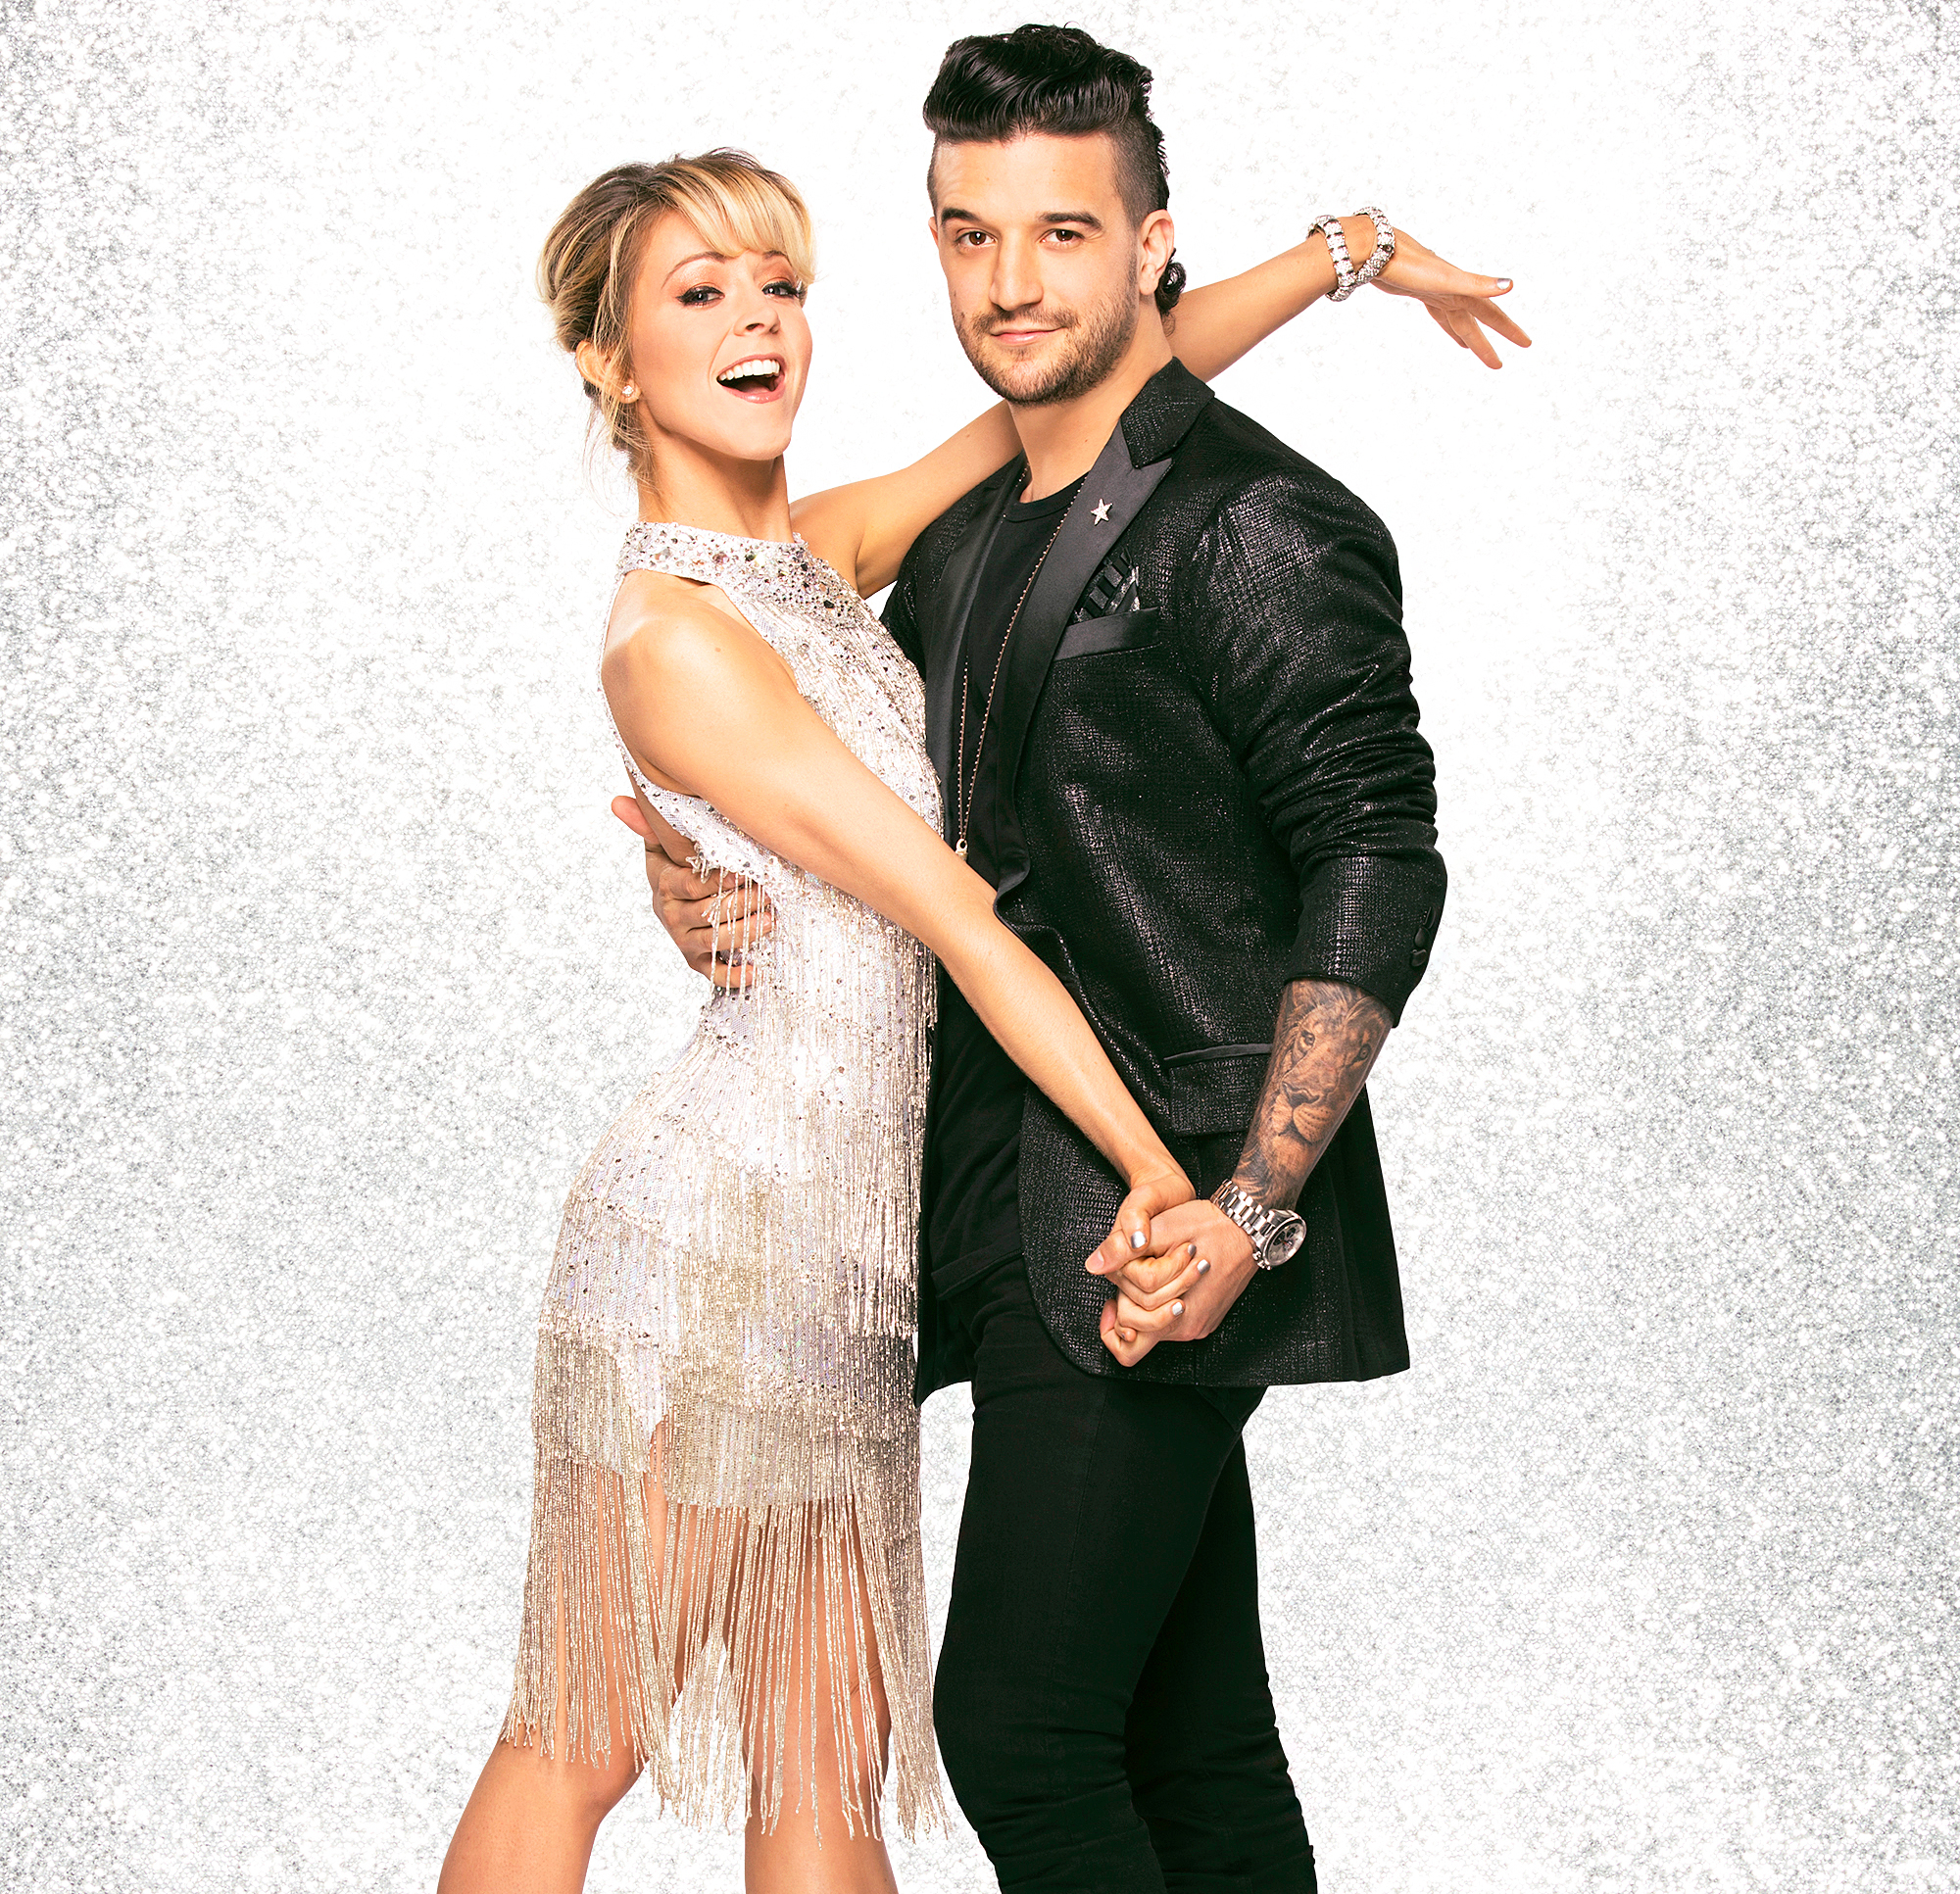 Mark Ballas and Lindsey Stirling Dancing With The Stars